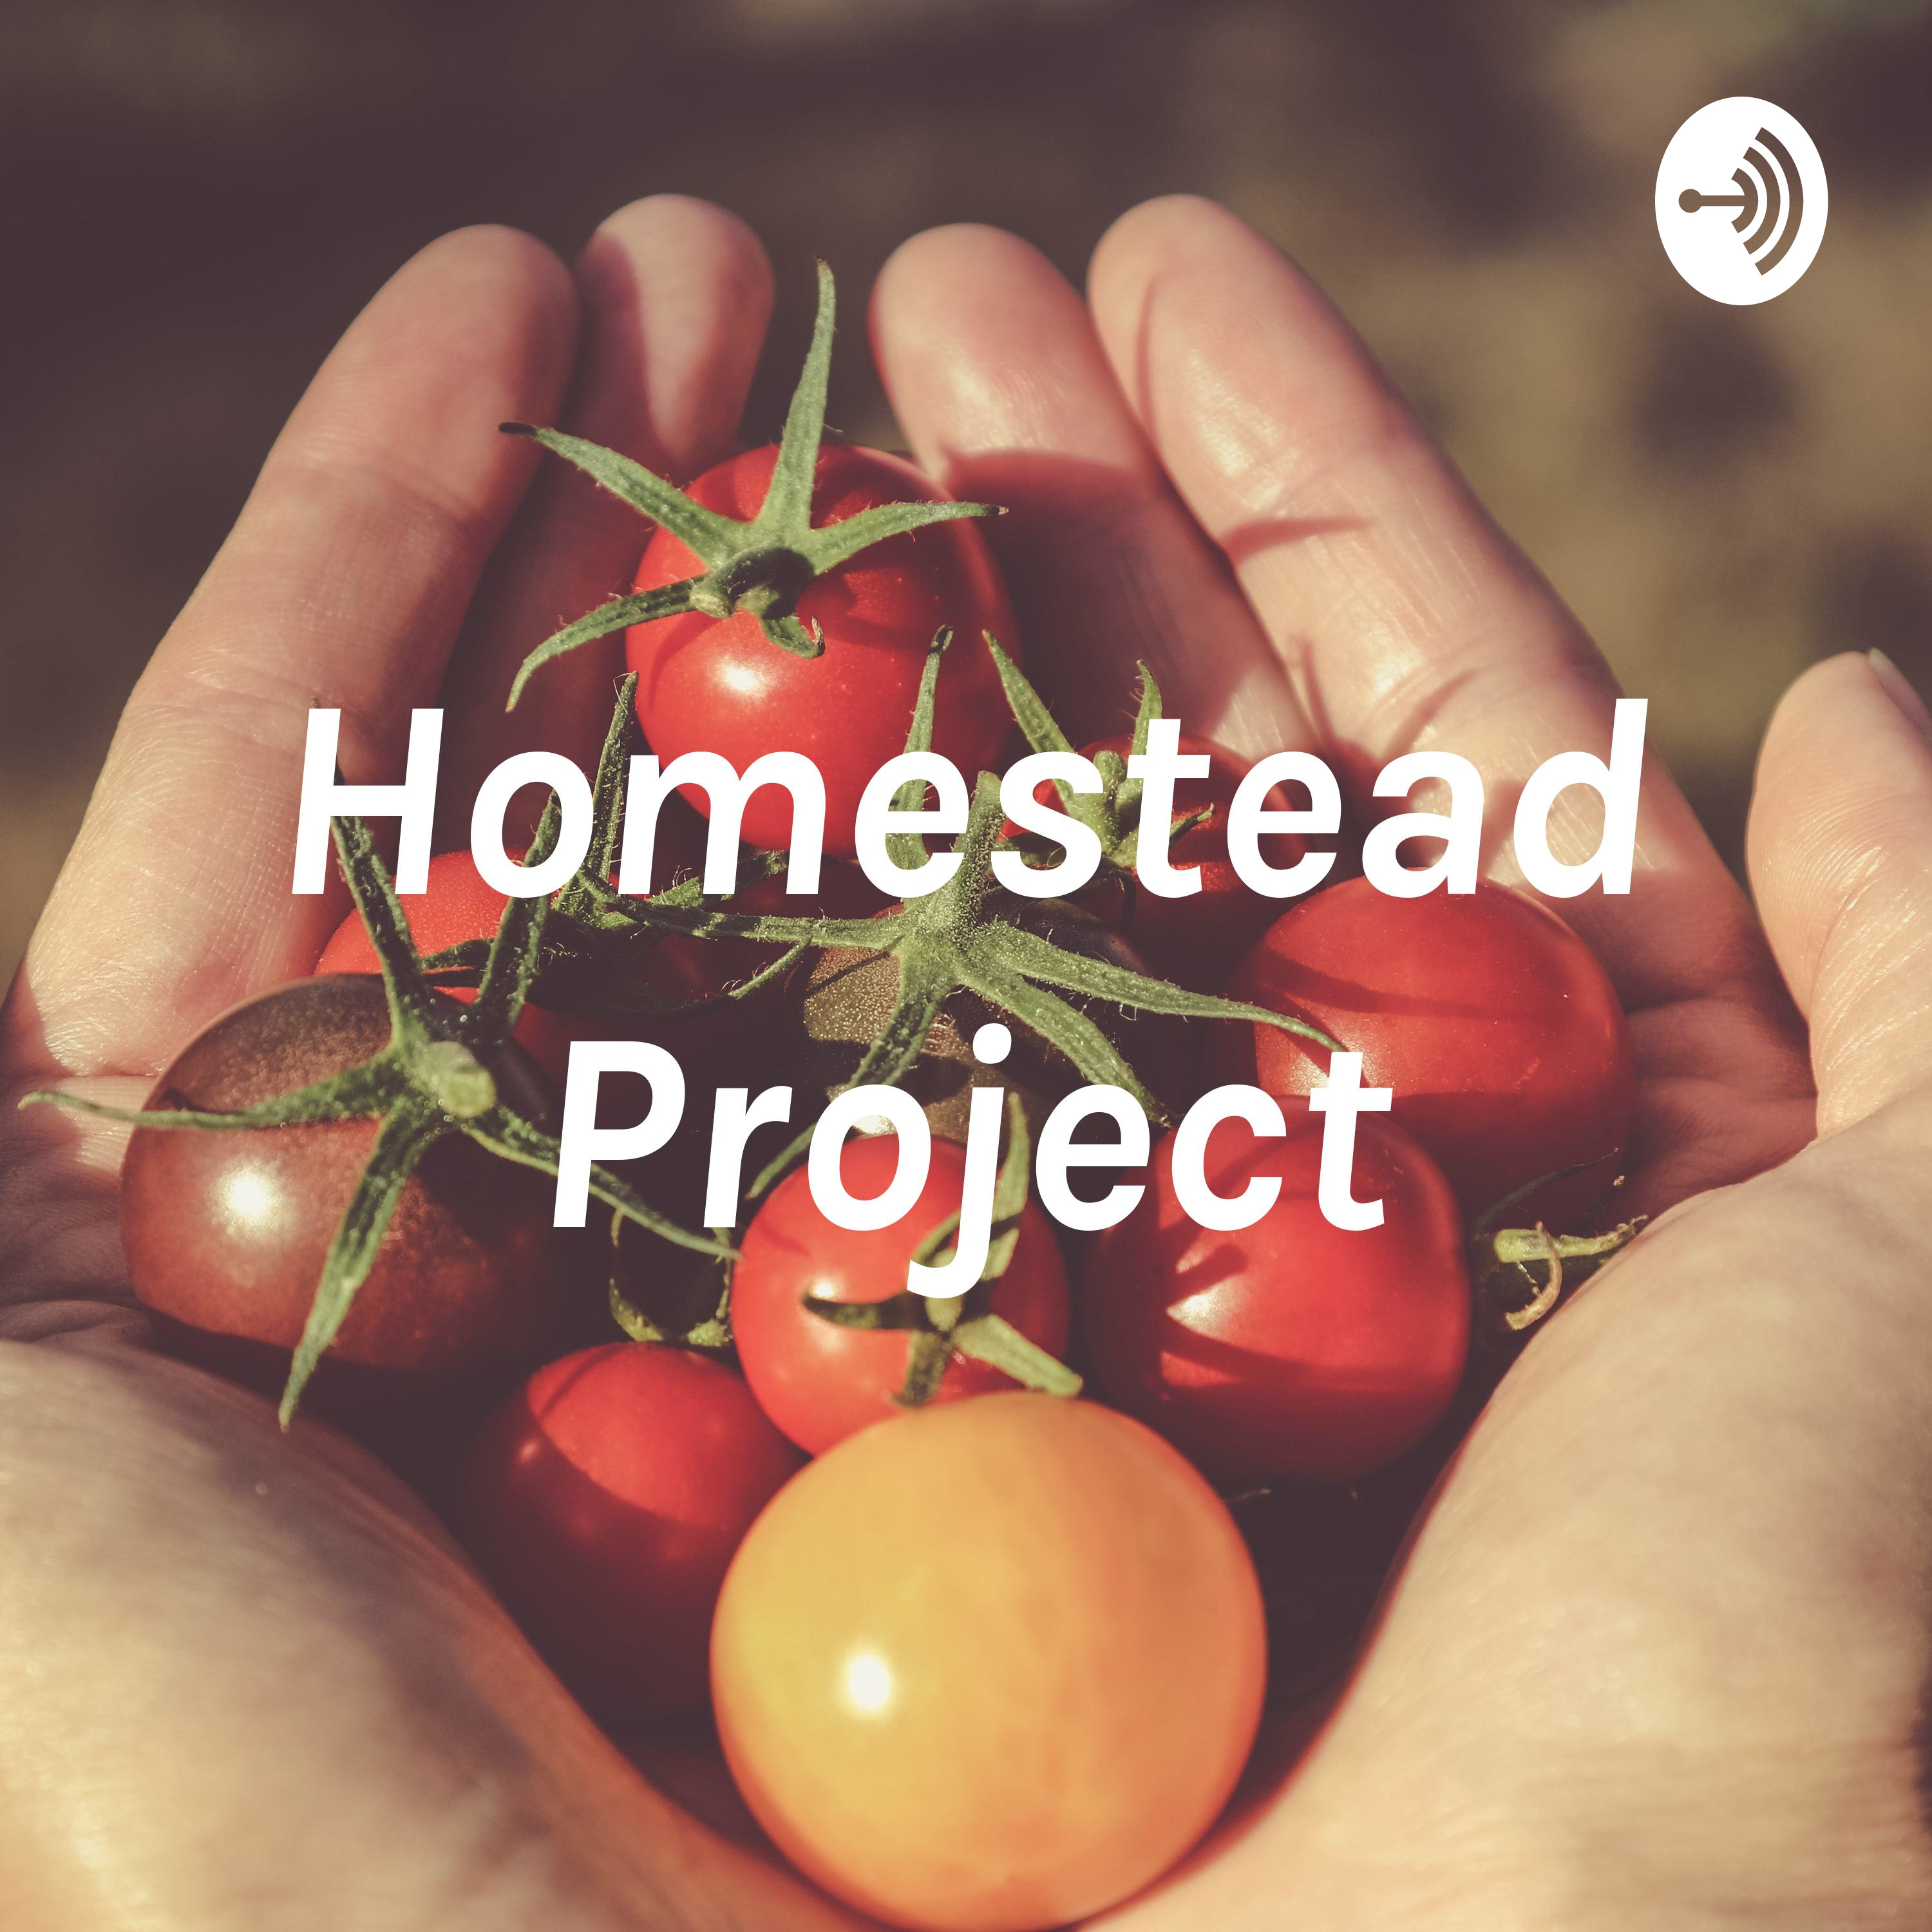 Homestead Project